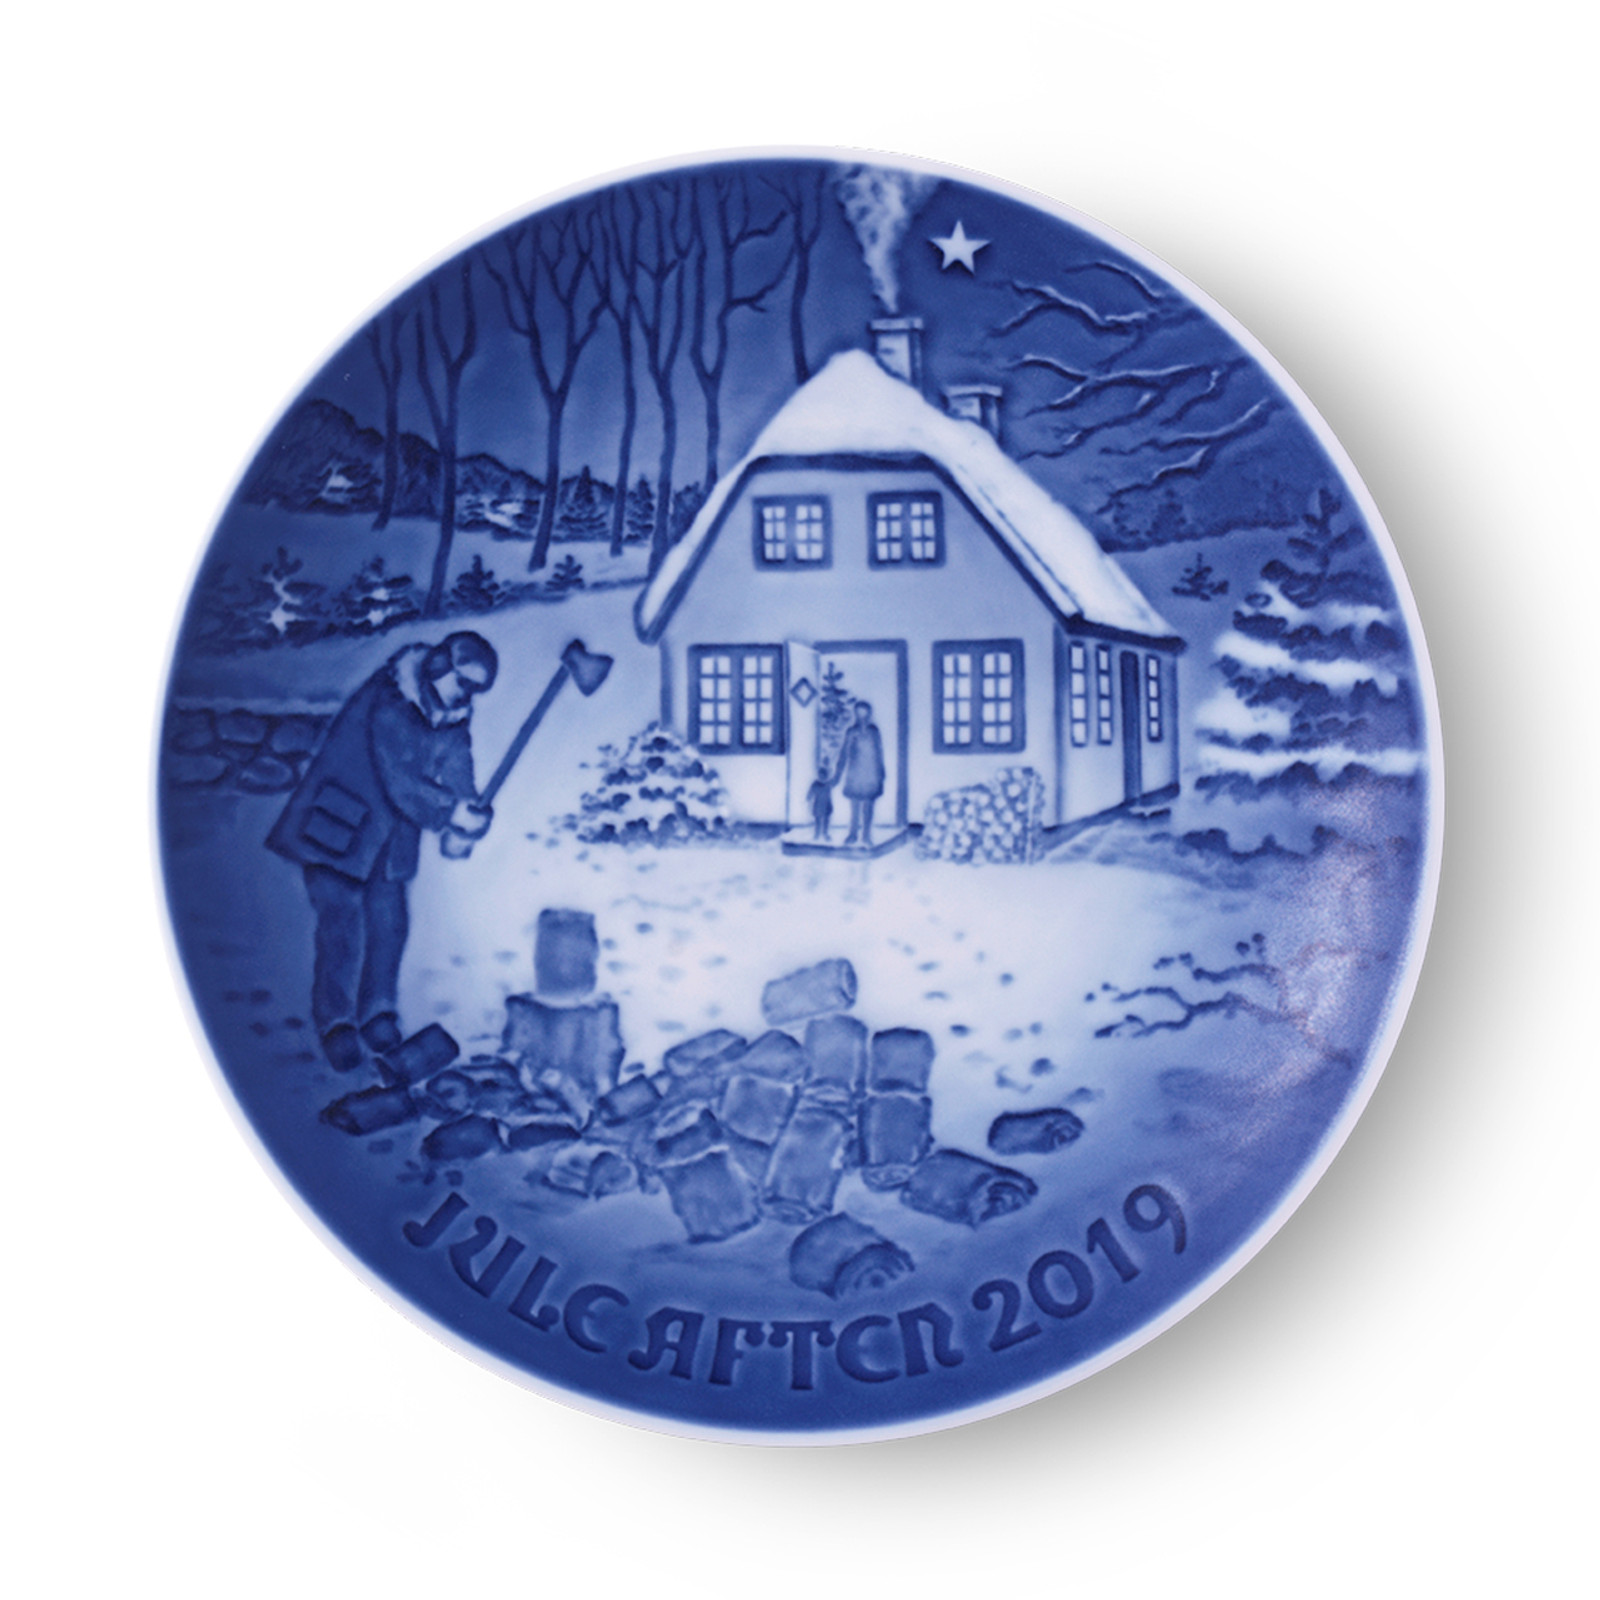 2019 Bing and Grondahl Annual Christmas Plate. Available at the Nordic Shop.